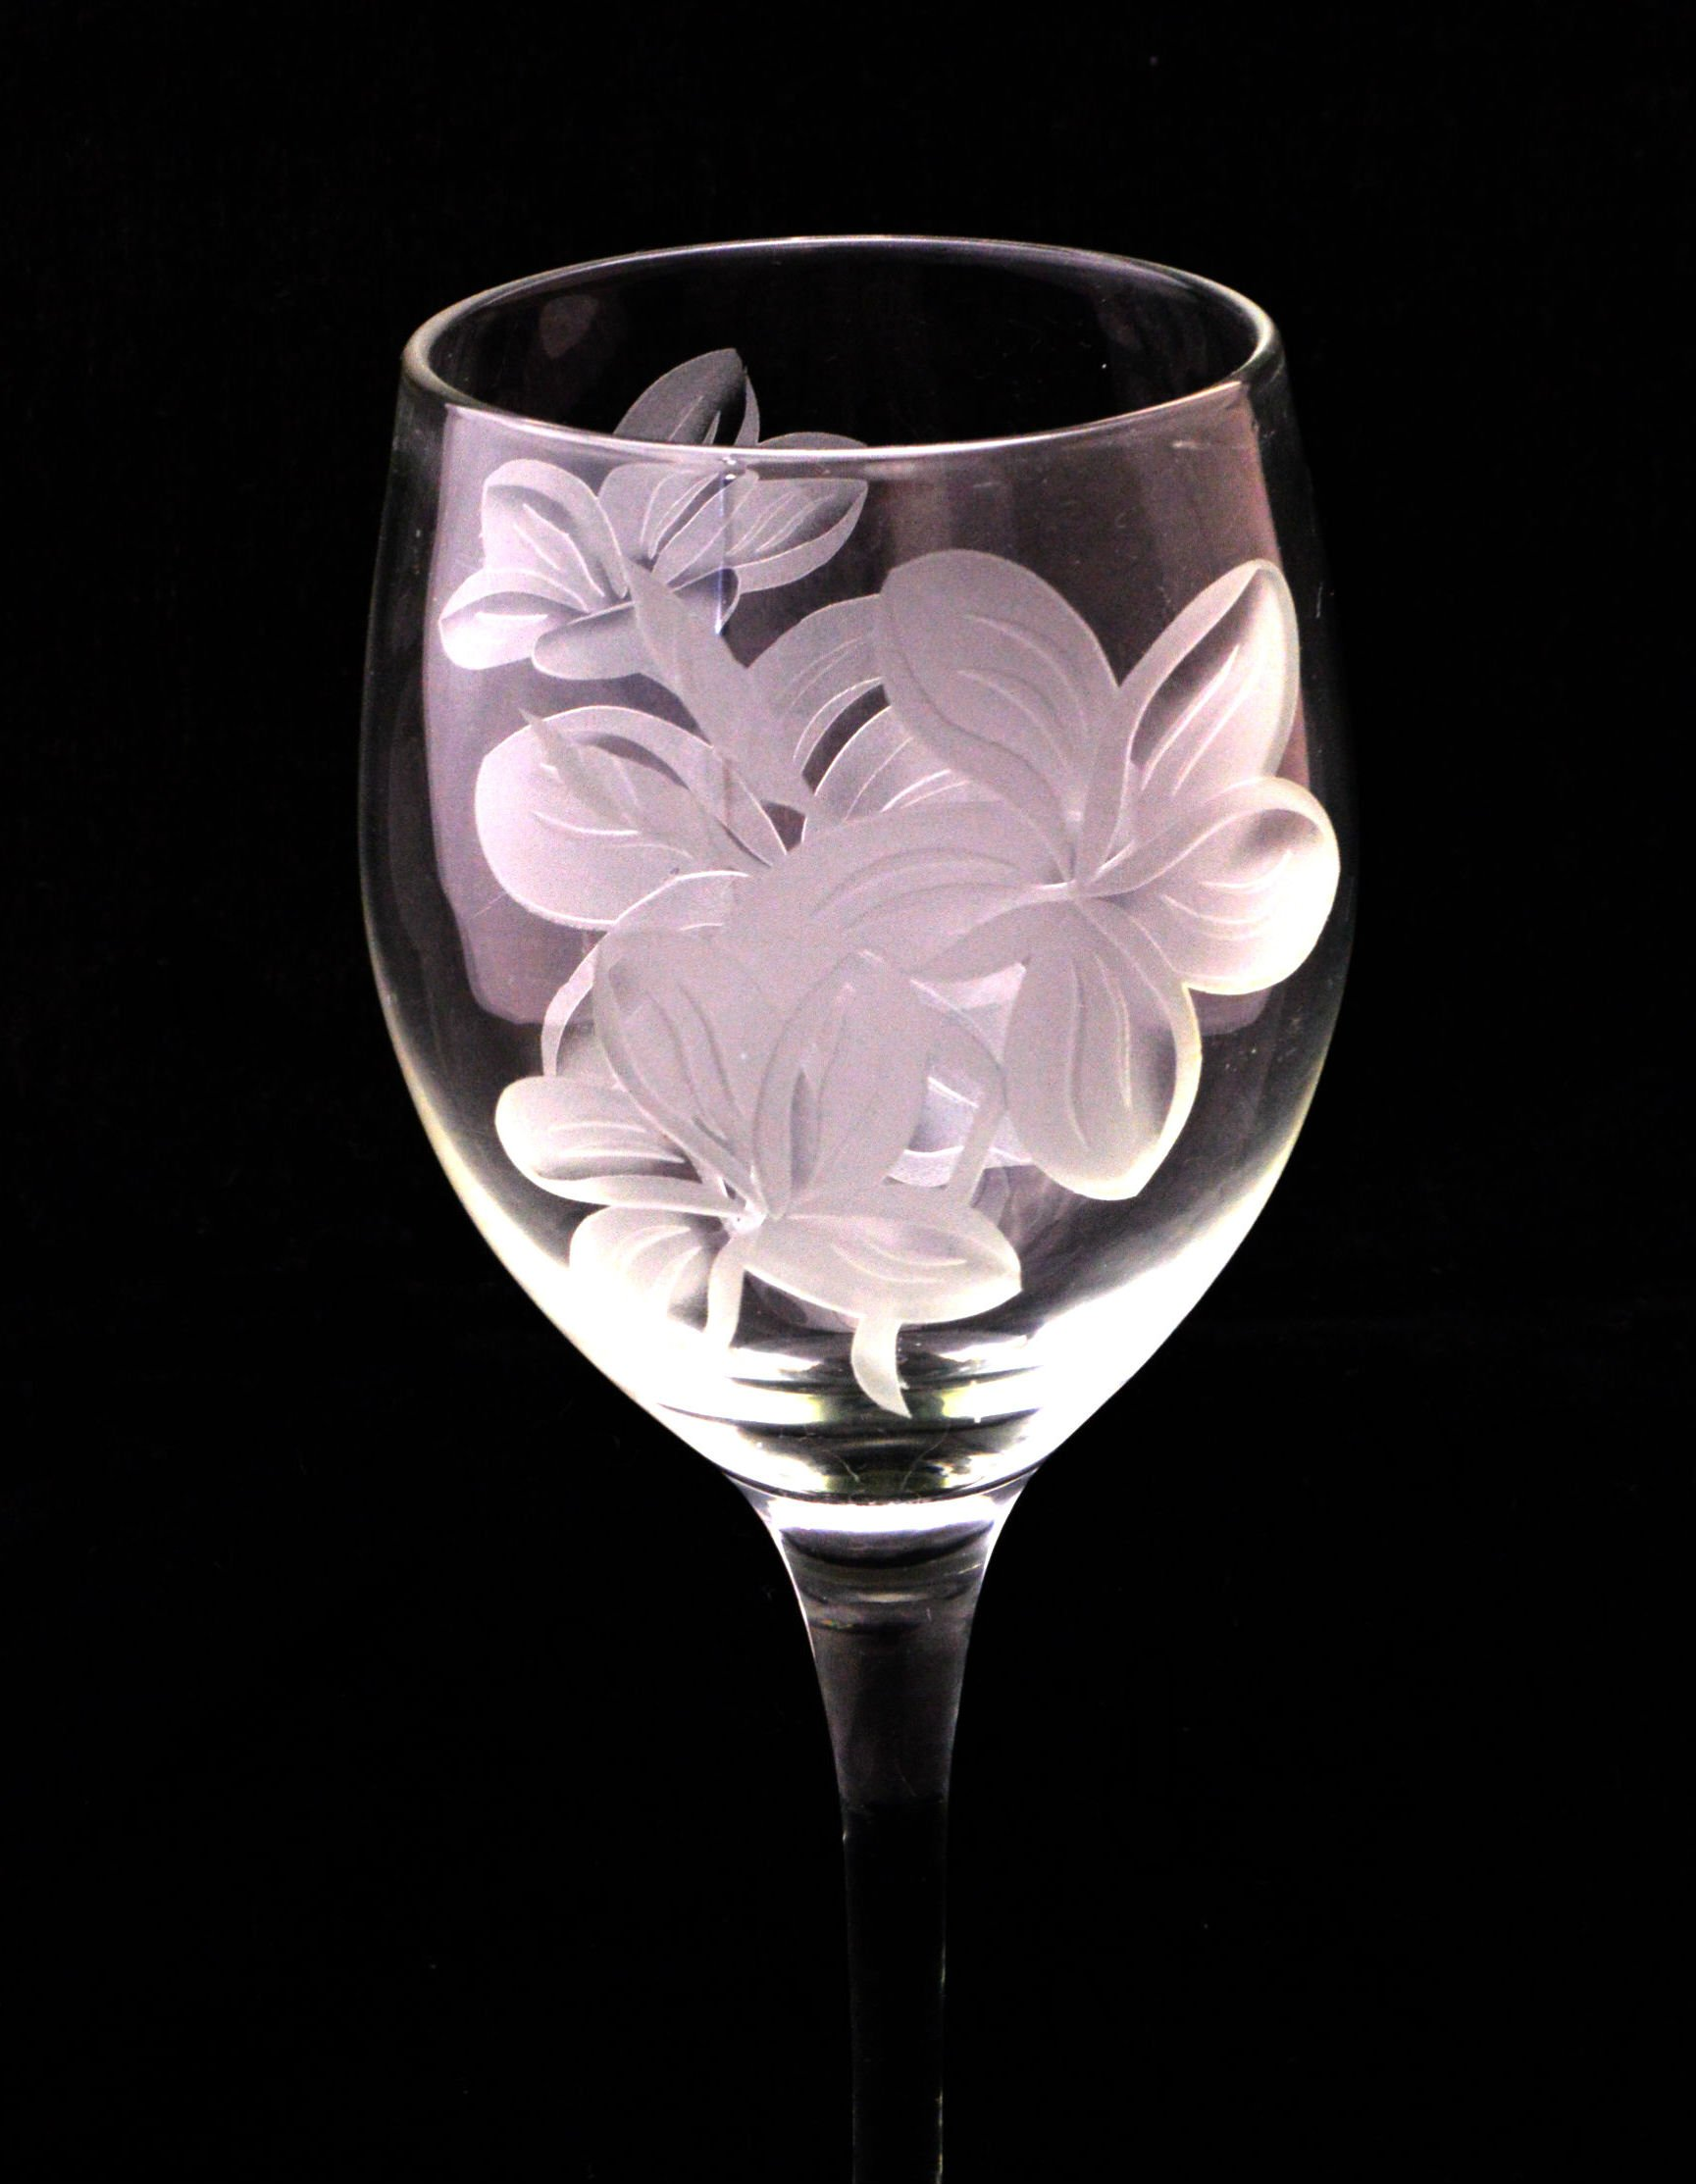 plumeria etched wine glass set - Etched Wine Glasses